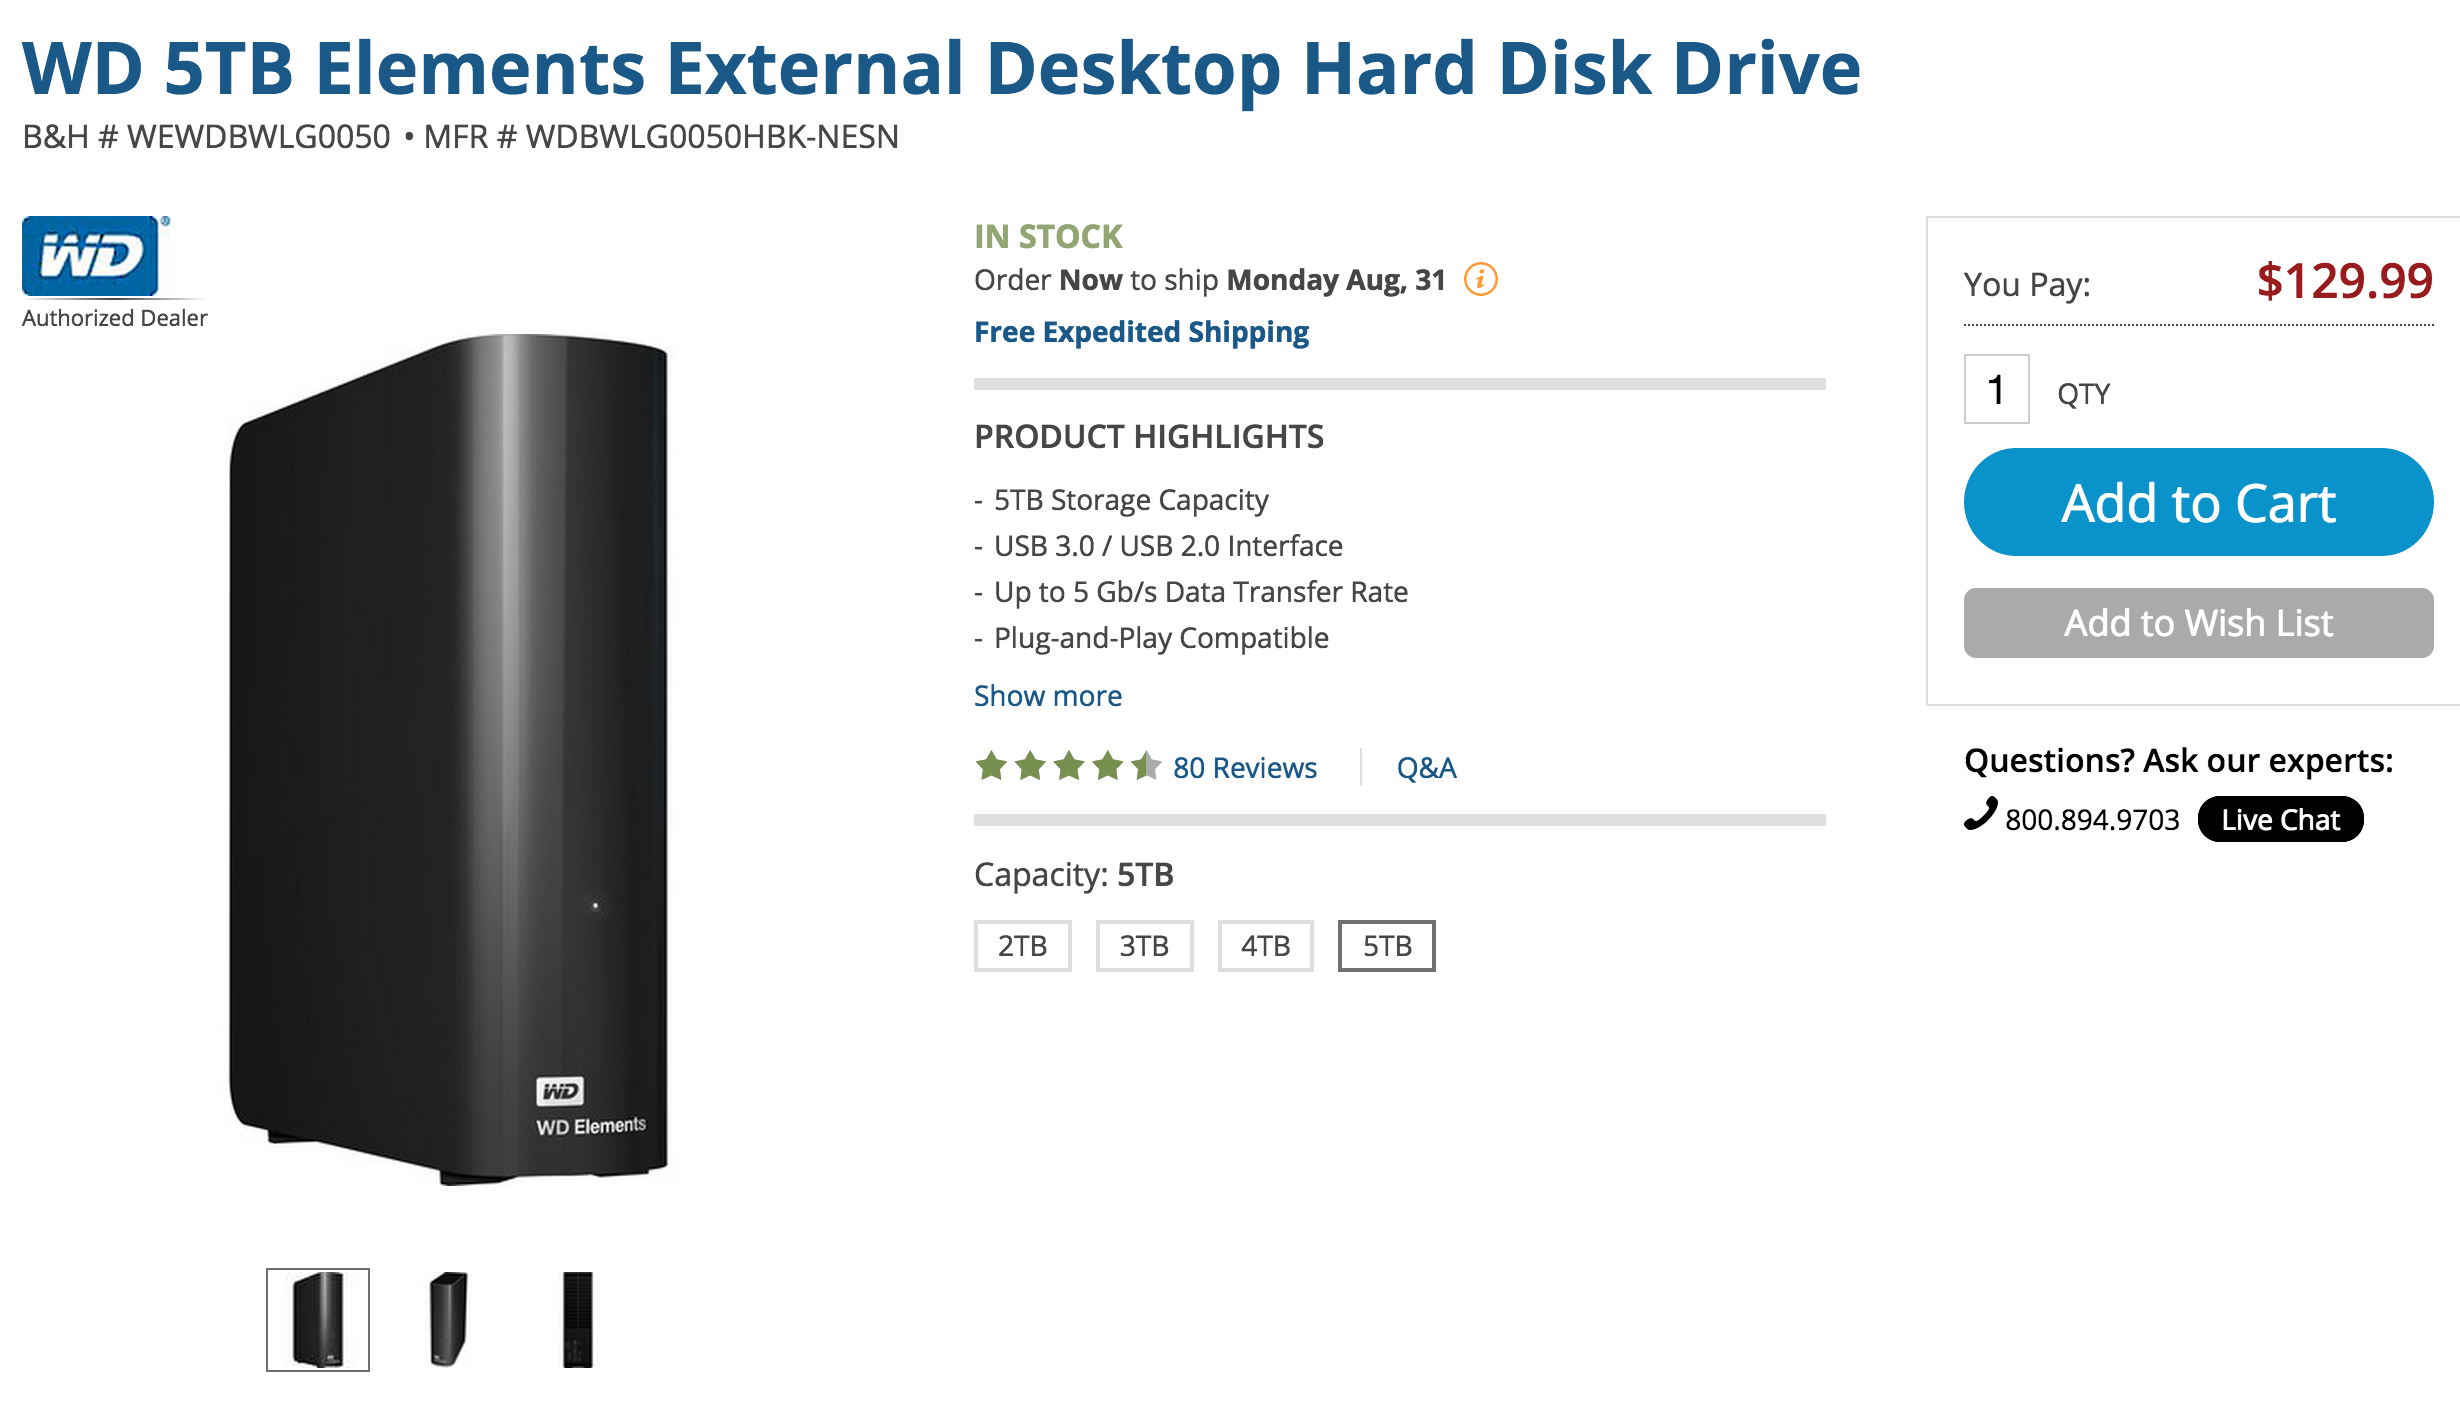 wd-elements-5tb-bh-deal